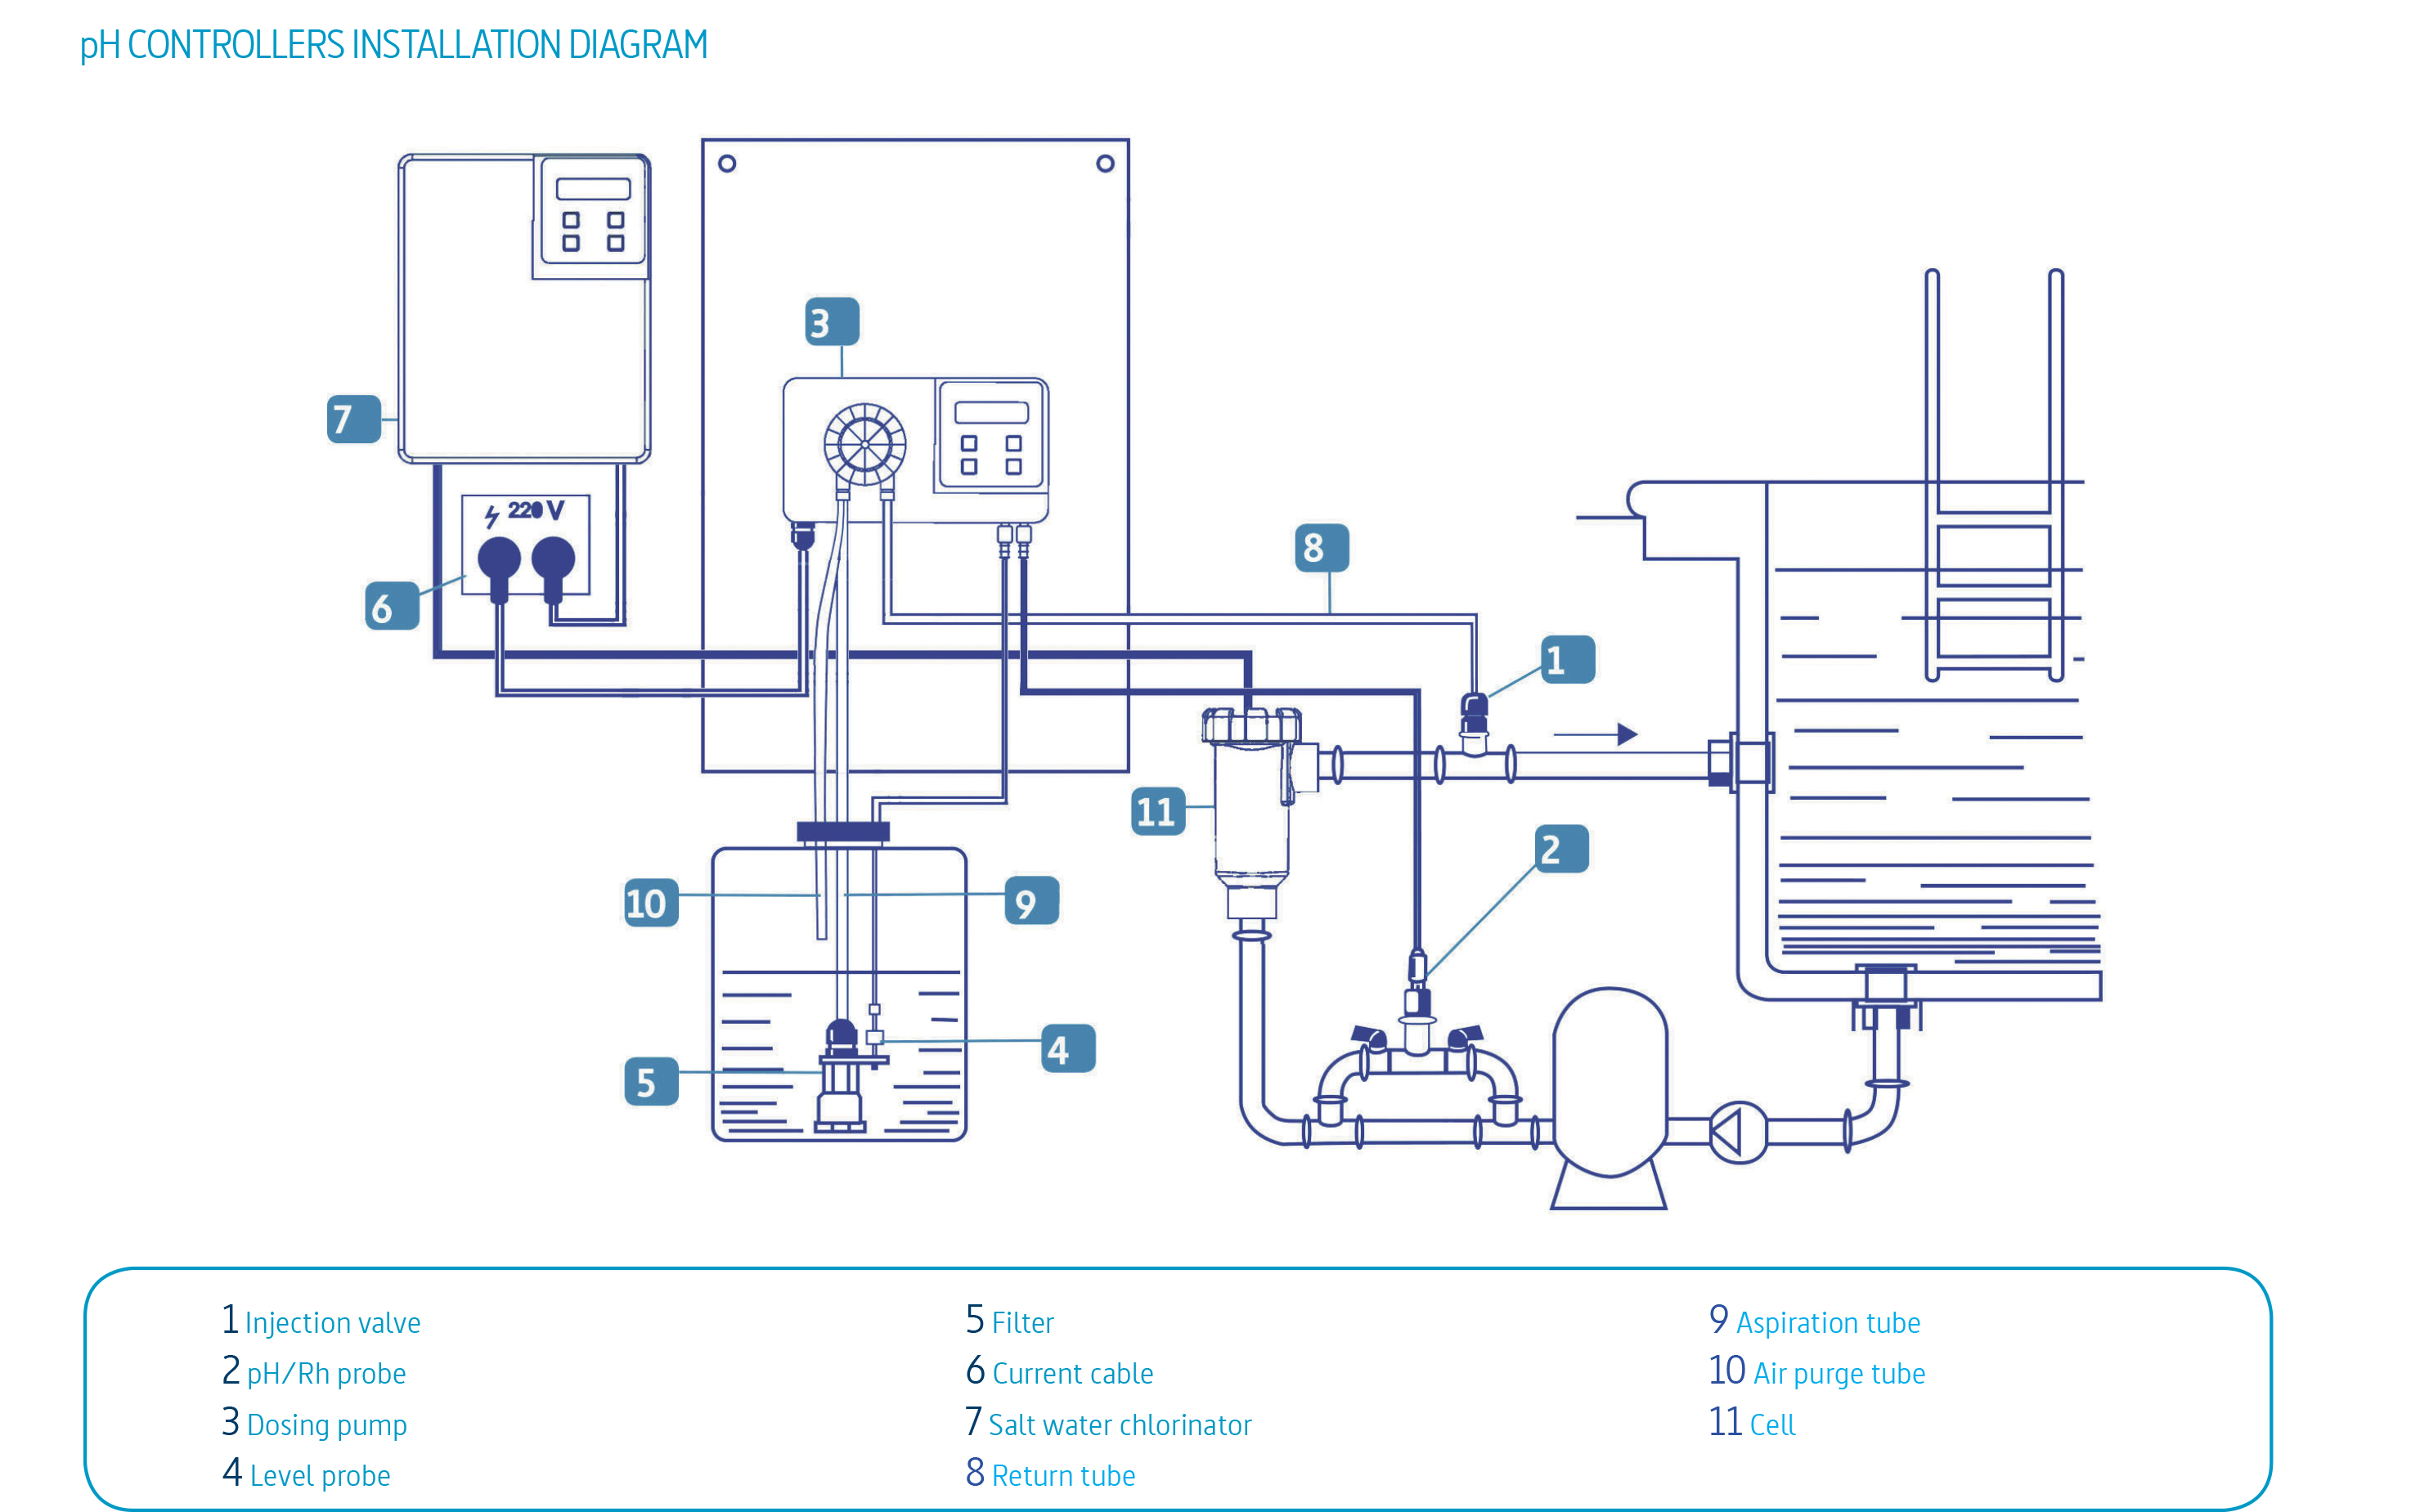 Ph Redox Control System To Manage The Salt Water Chlorinator